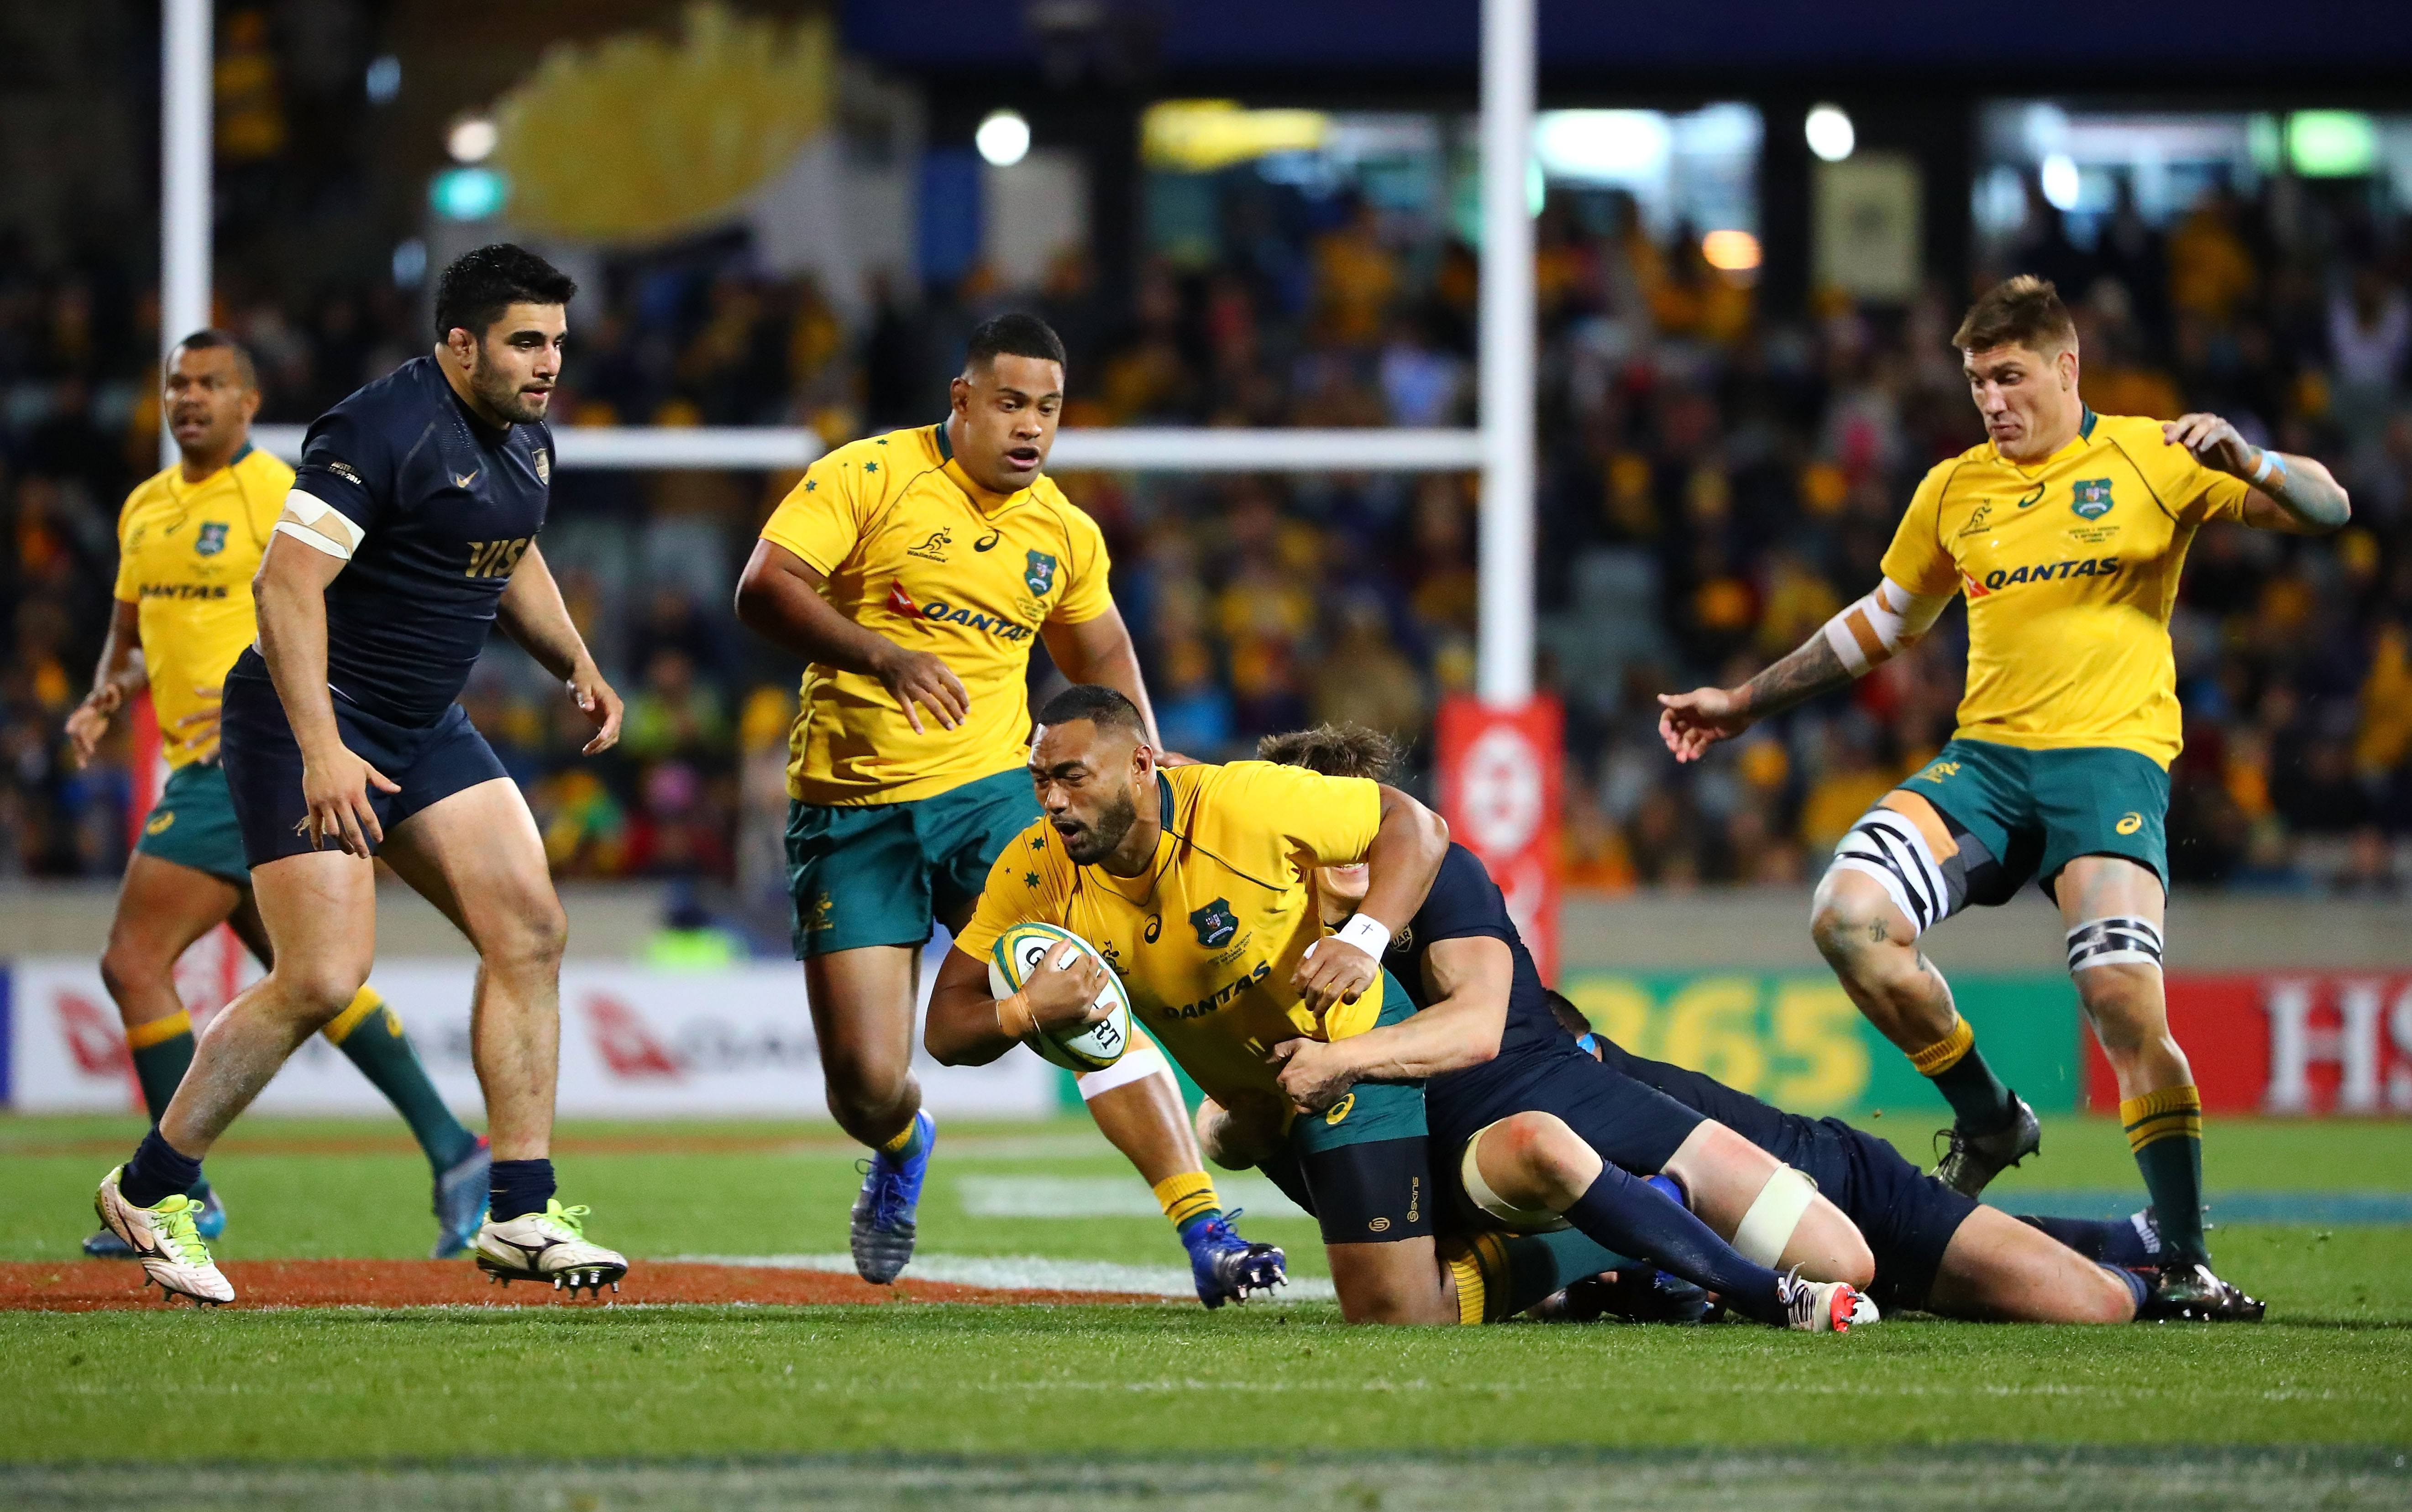 Accenture Provides Qantas Wallabies With Game Changing Performance Stats